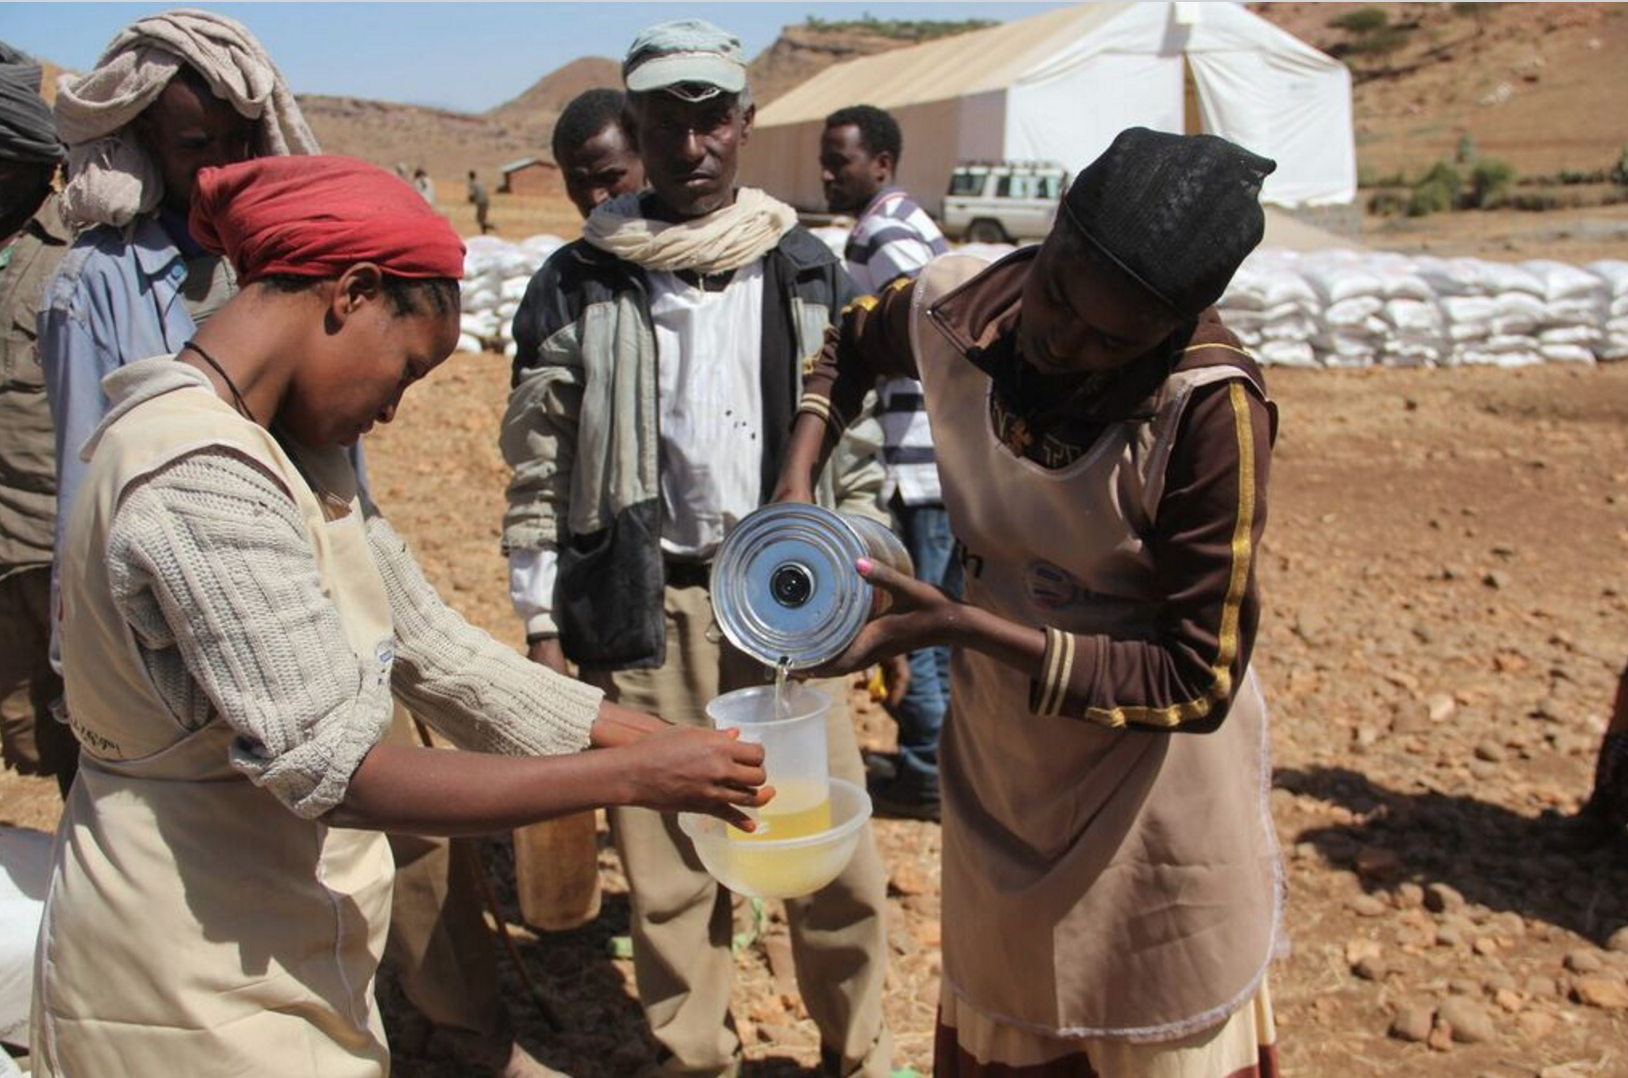 Providing tangible hope to Ethiopian families in crisis